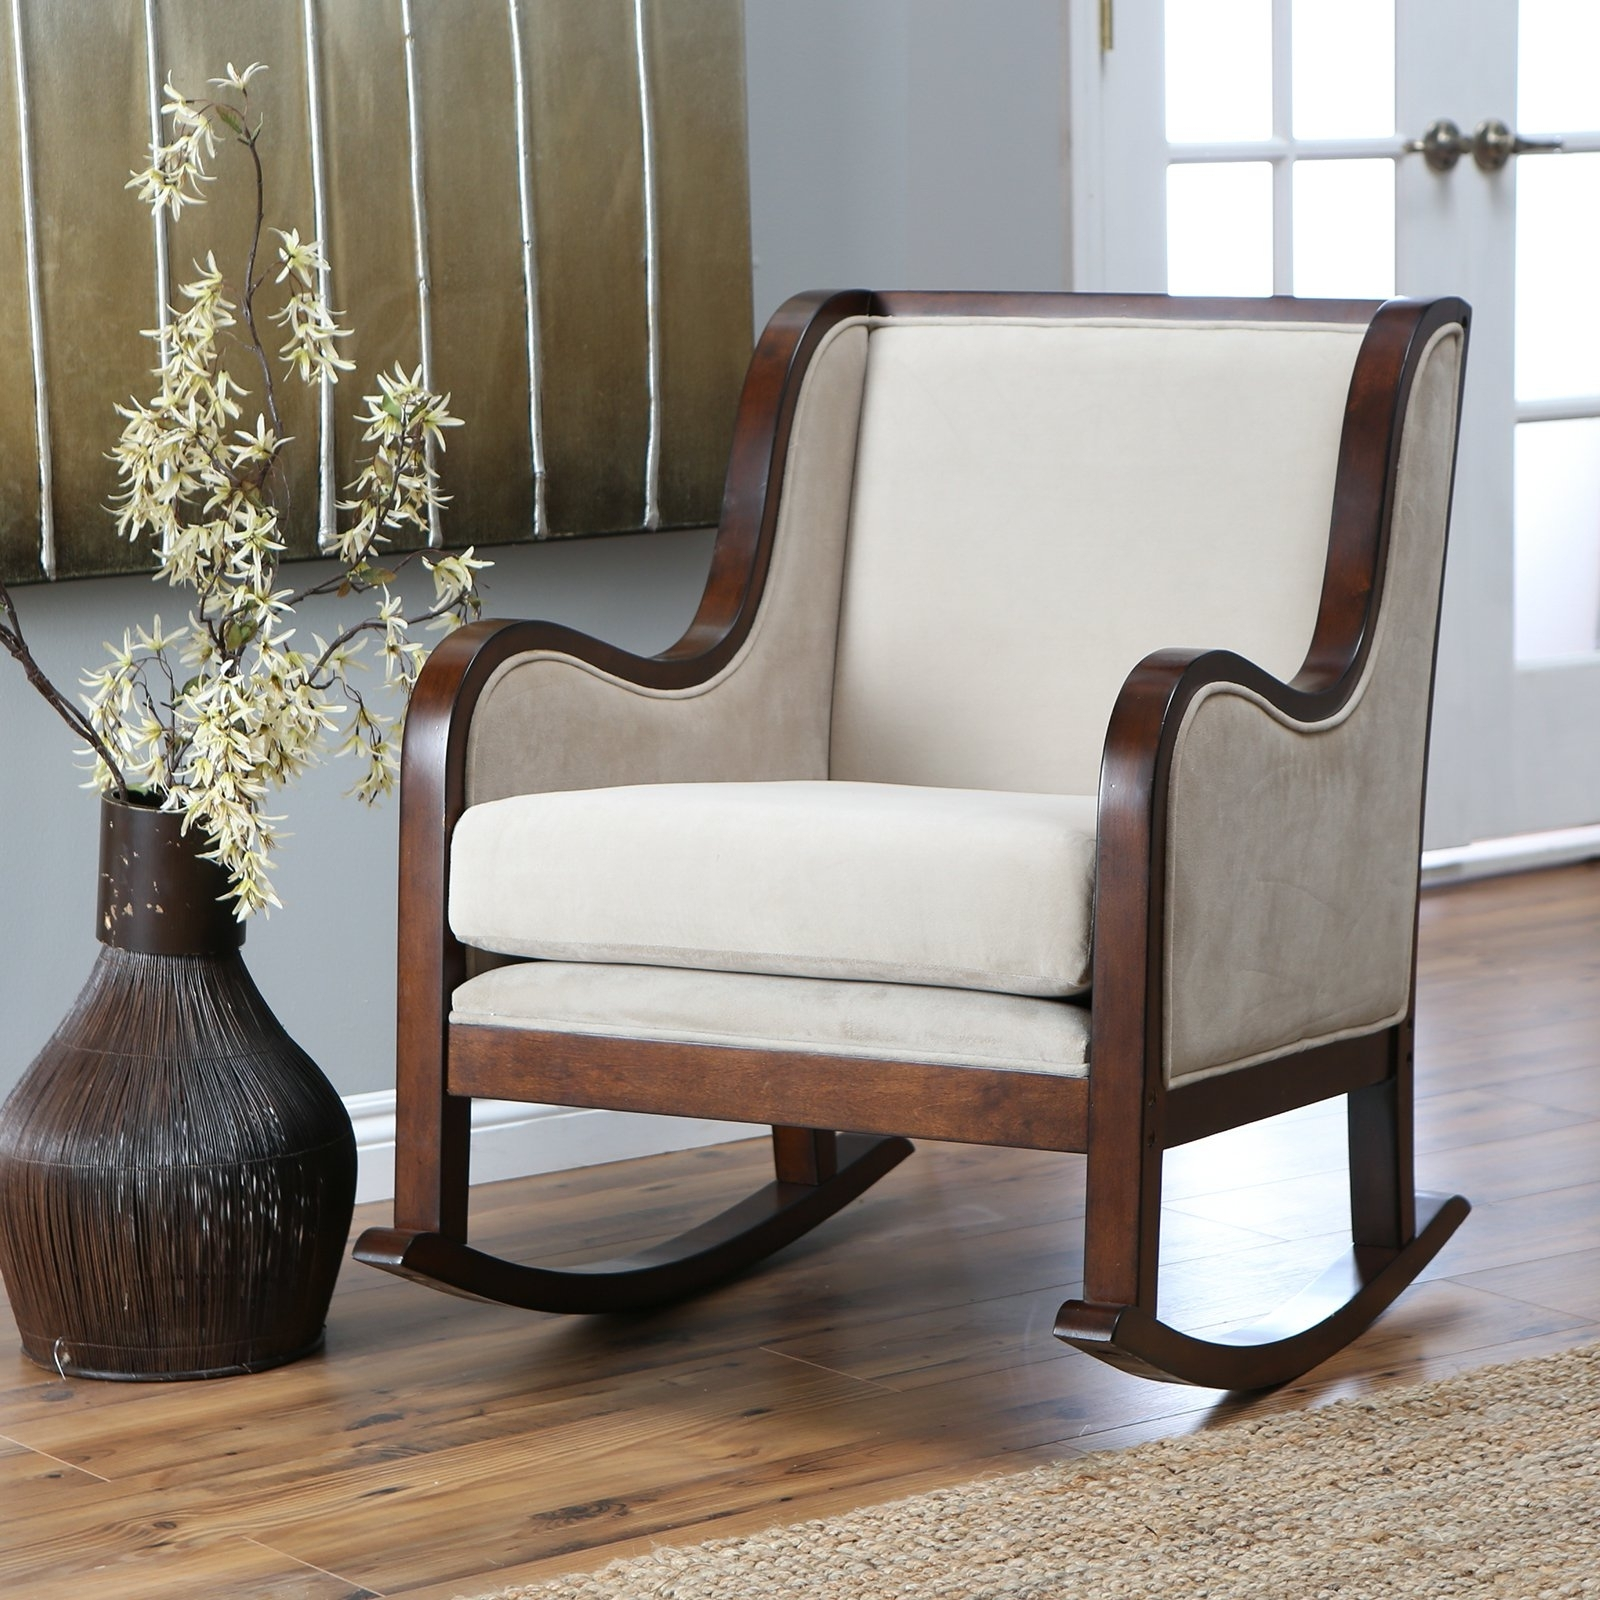 2017 Rocking Chairs For Small Spaces Throughout Grey Glider Recliner For Nursery – Kevinjohnsonformayor (View 8 of 15)